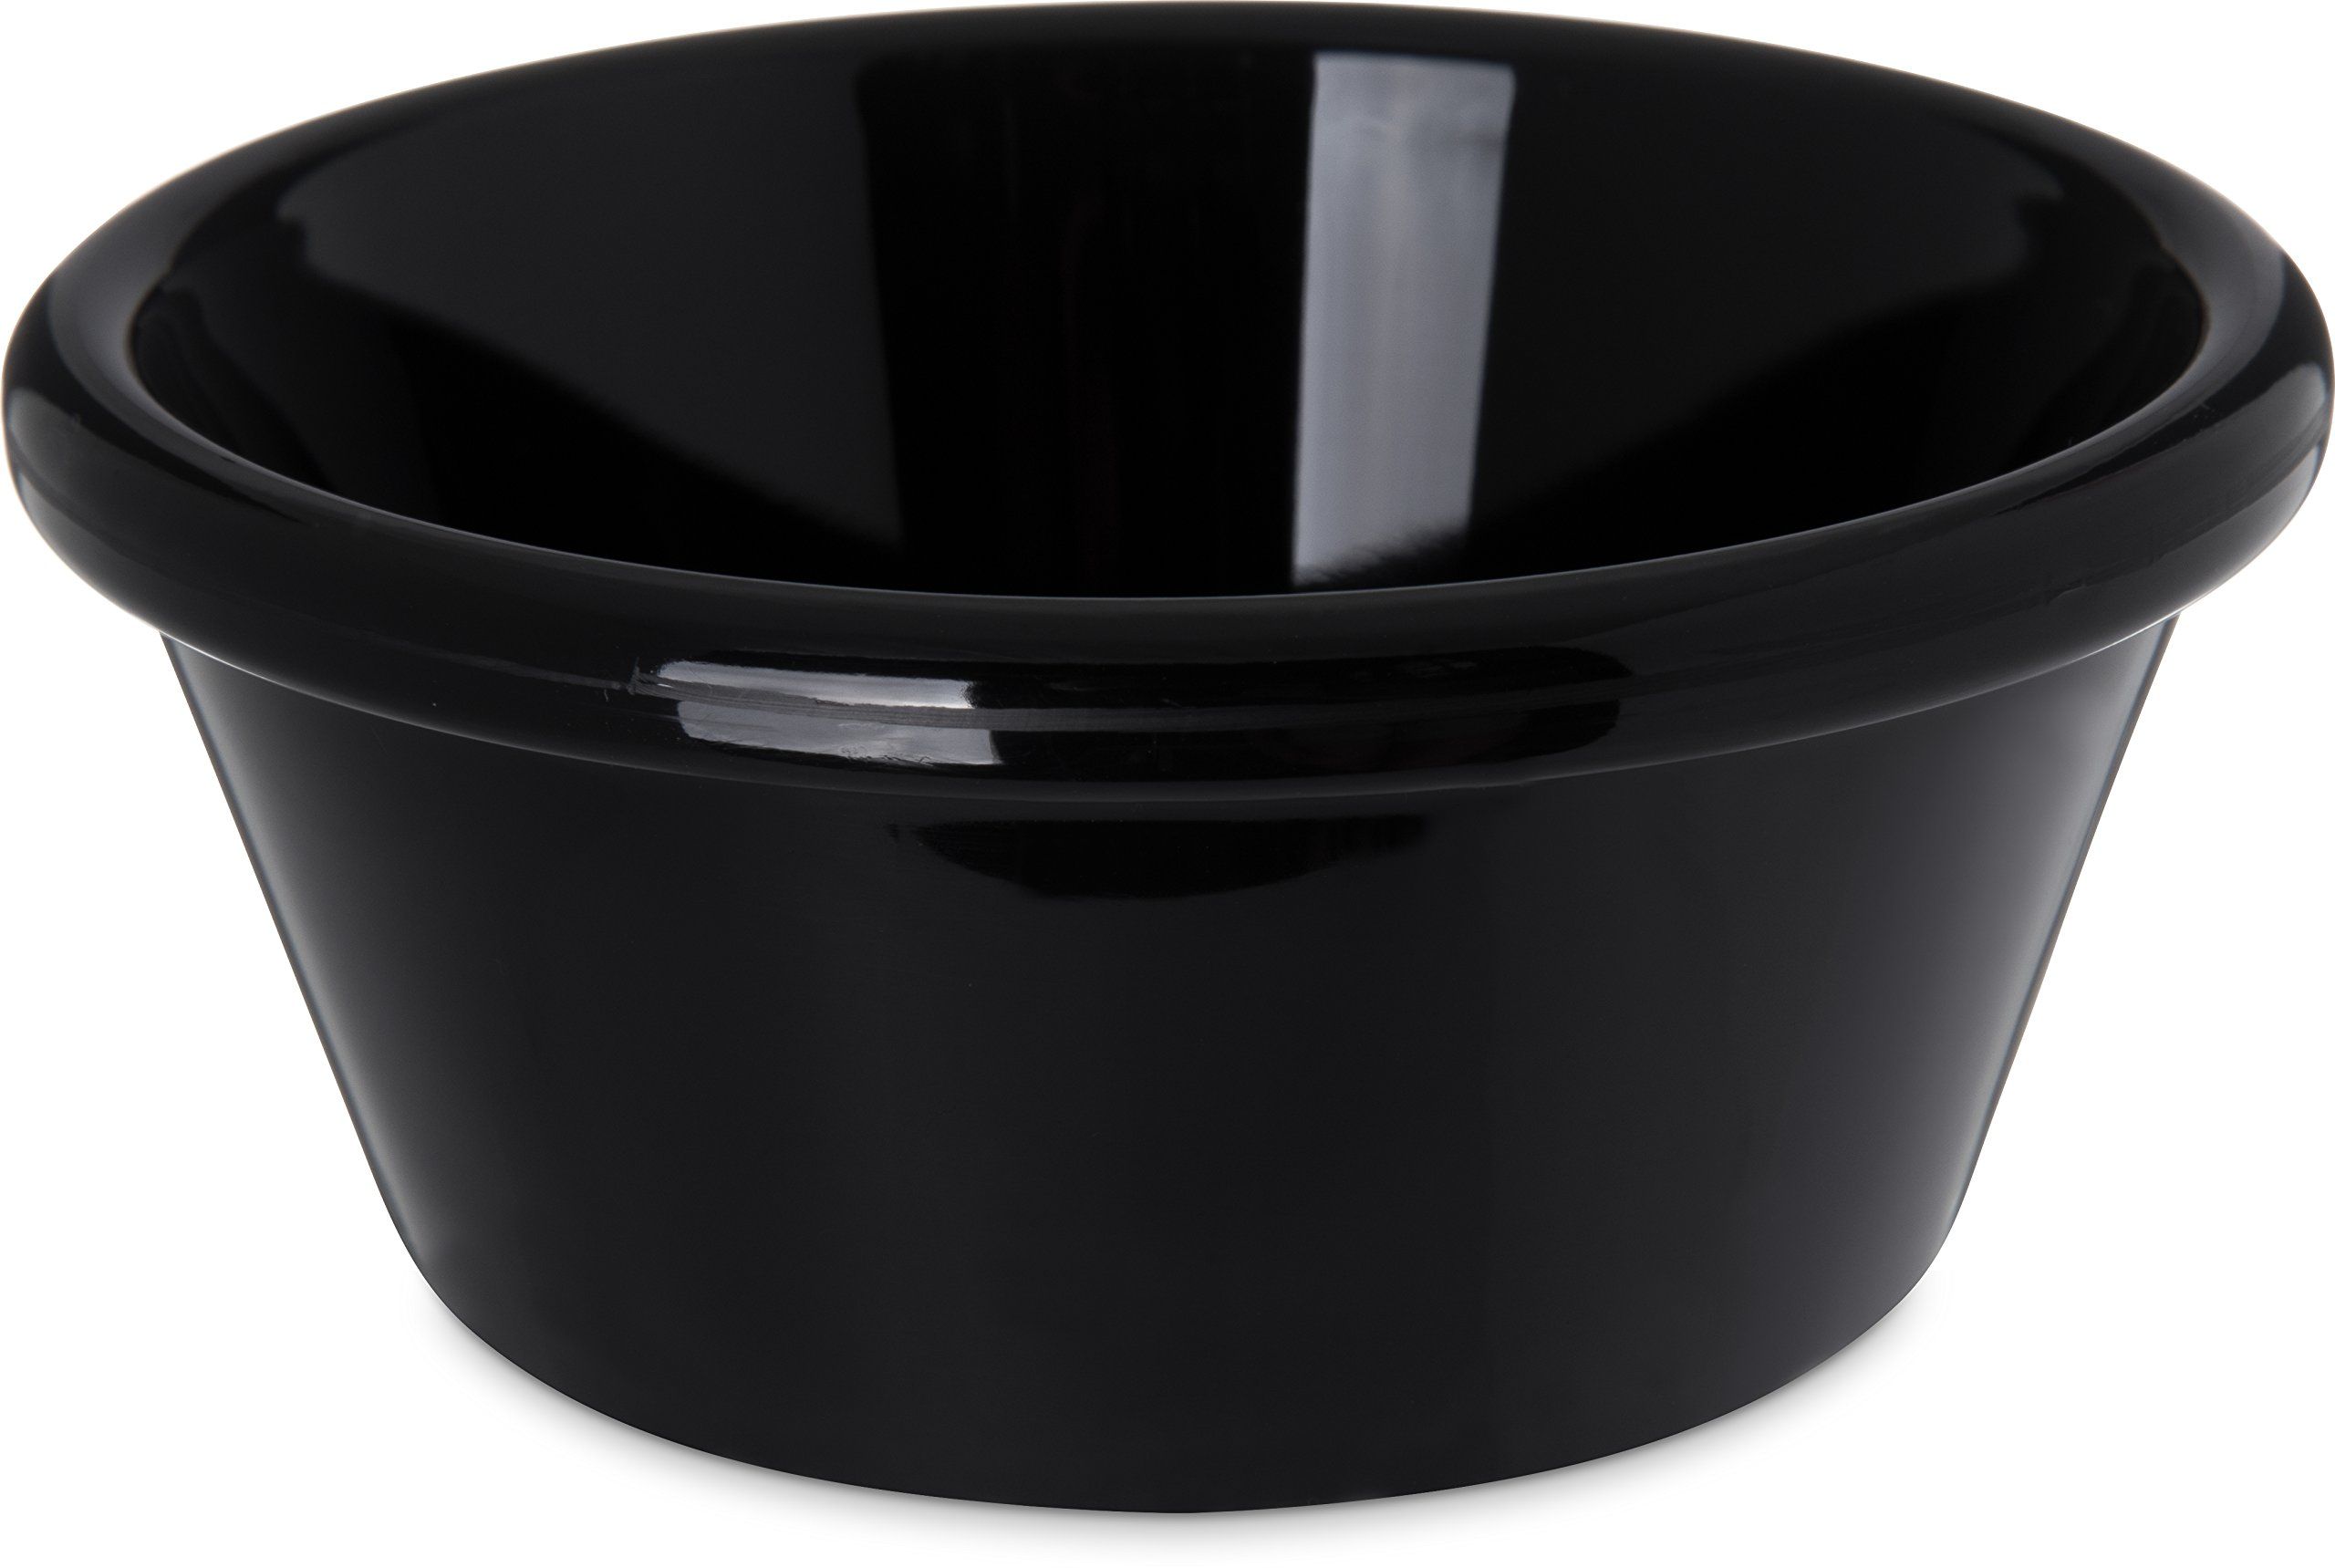 Carlisle 4312603 SAN Smooth Ramekin, 6 oz Capacity, 1.80'' Height, Black (Case of 48) by Carlisle (Image #1)